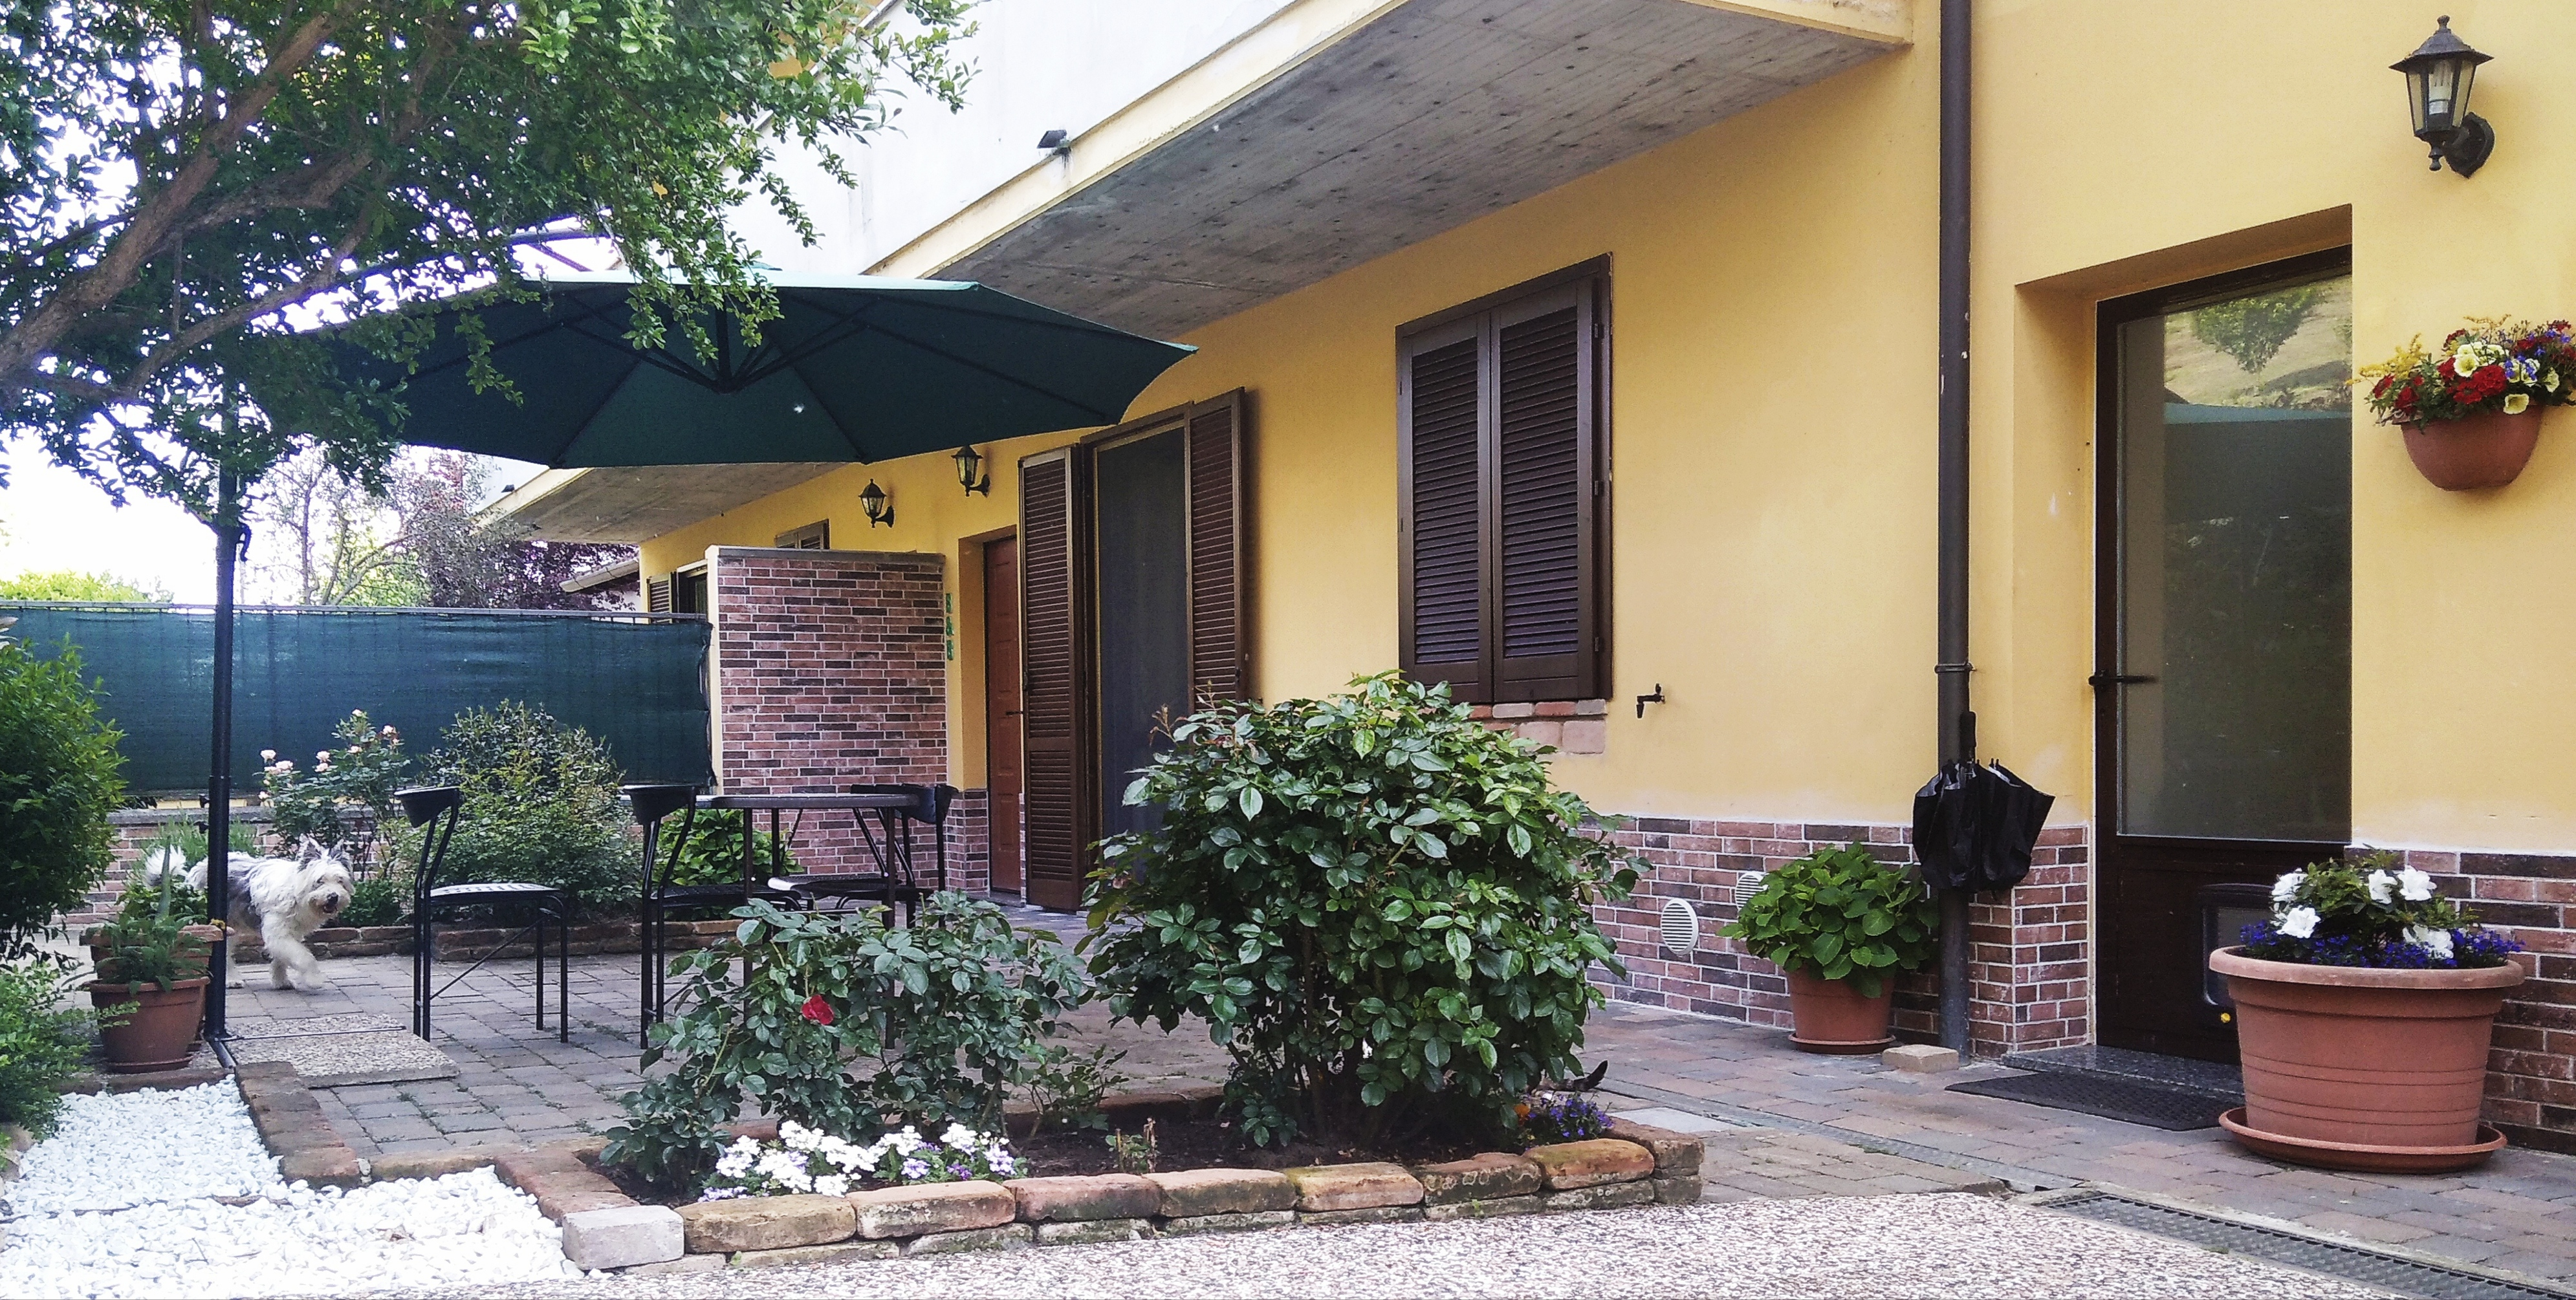 https://www.in-lombardia.it/sites/default/files/accomodation/images/108207/47817/ccgiardino.jpg